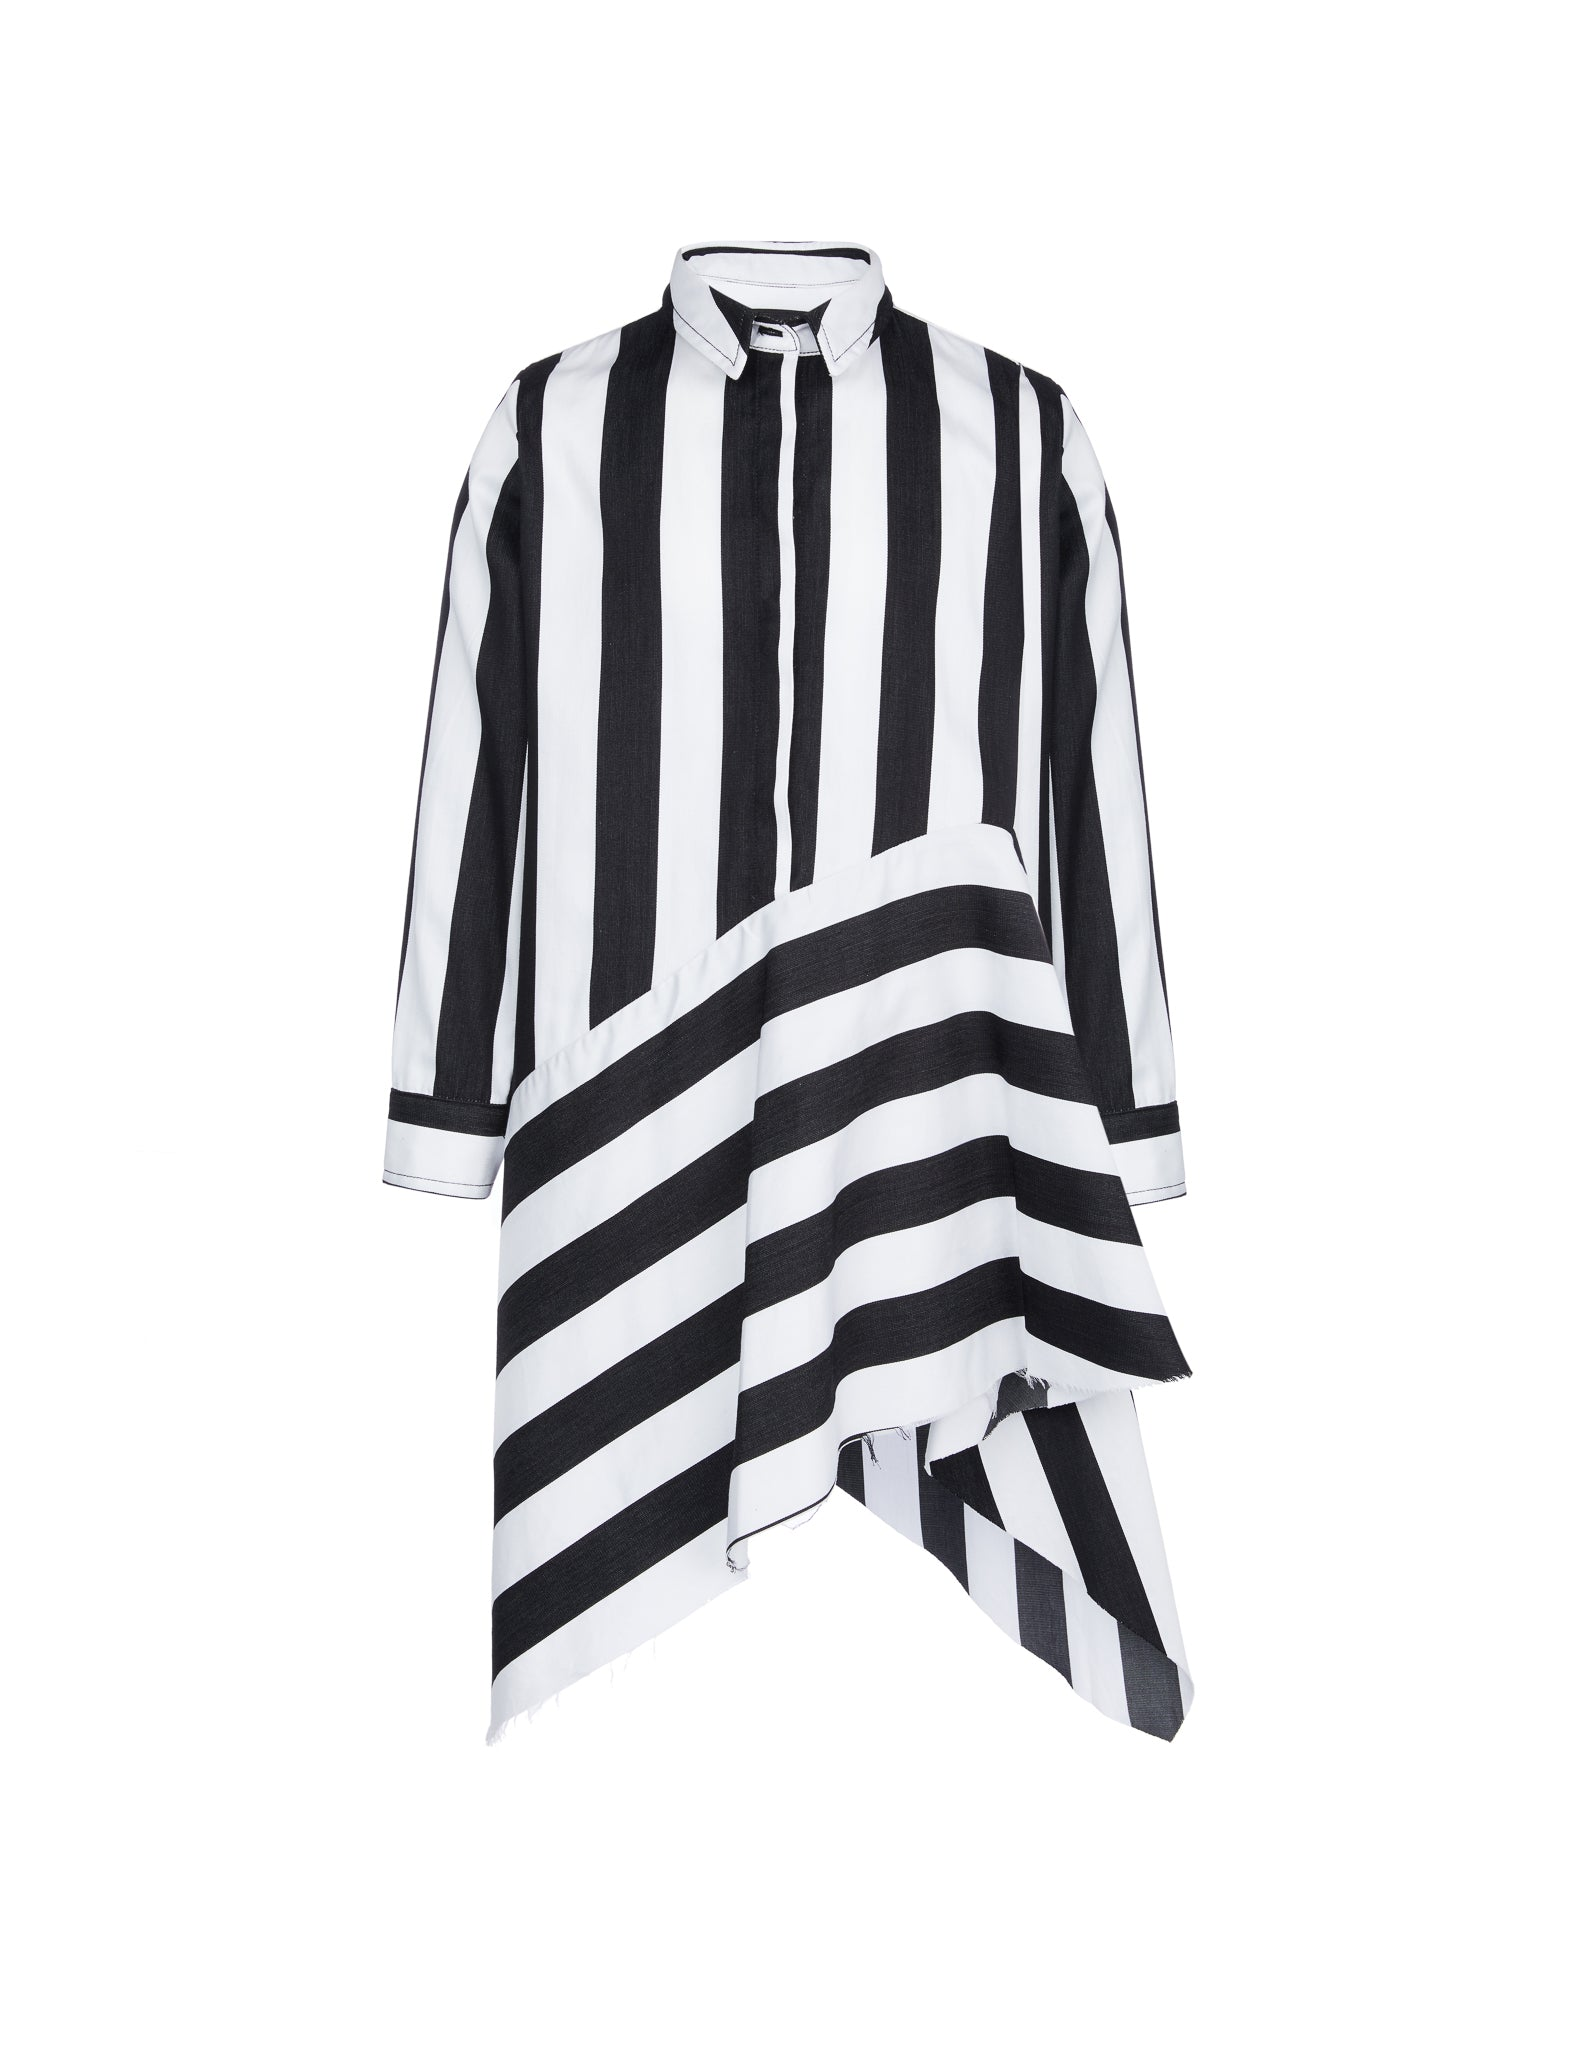 SHIRT DRESS IN BLACK AND WHITE